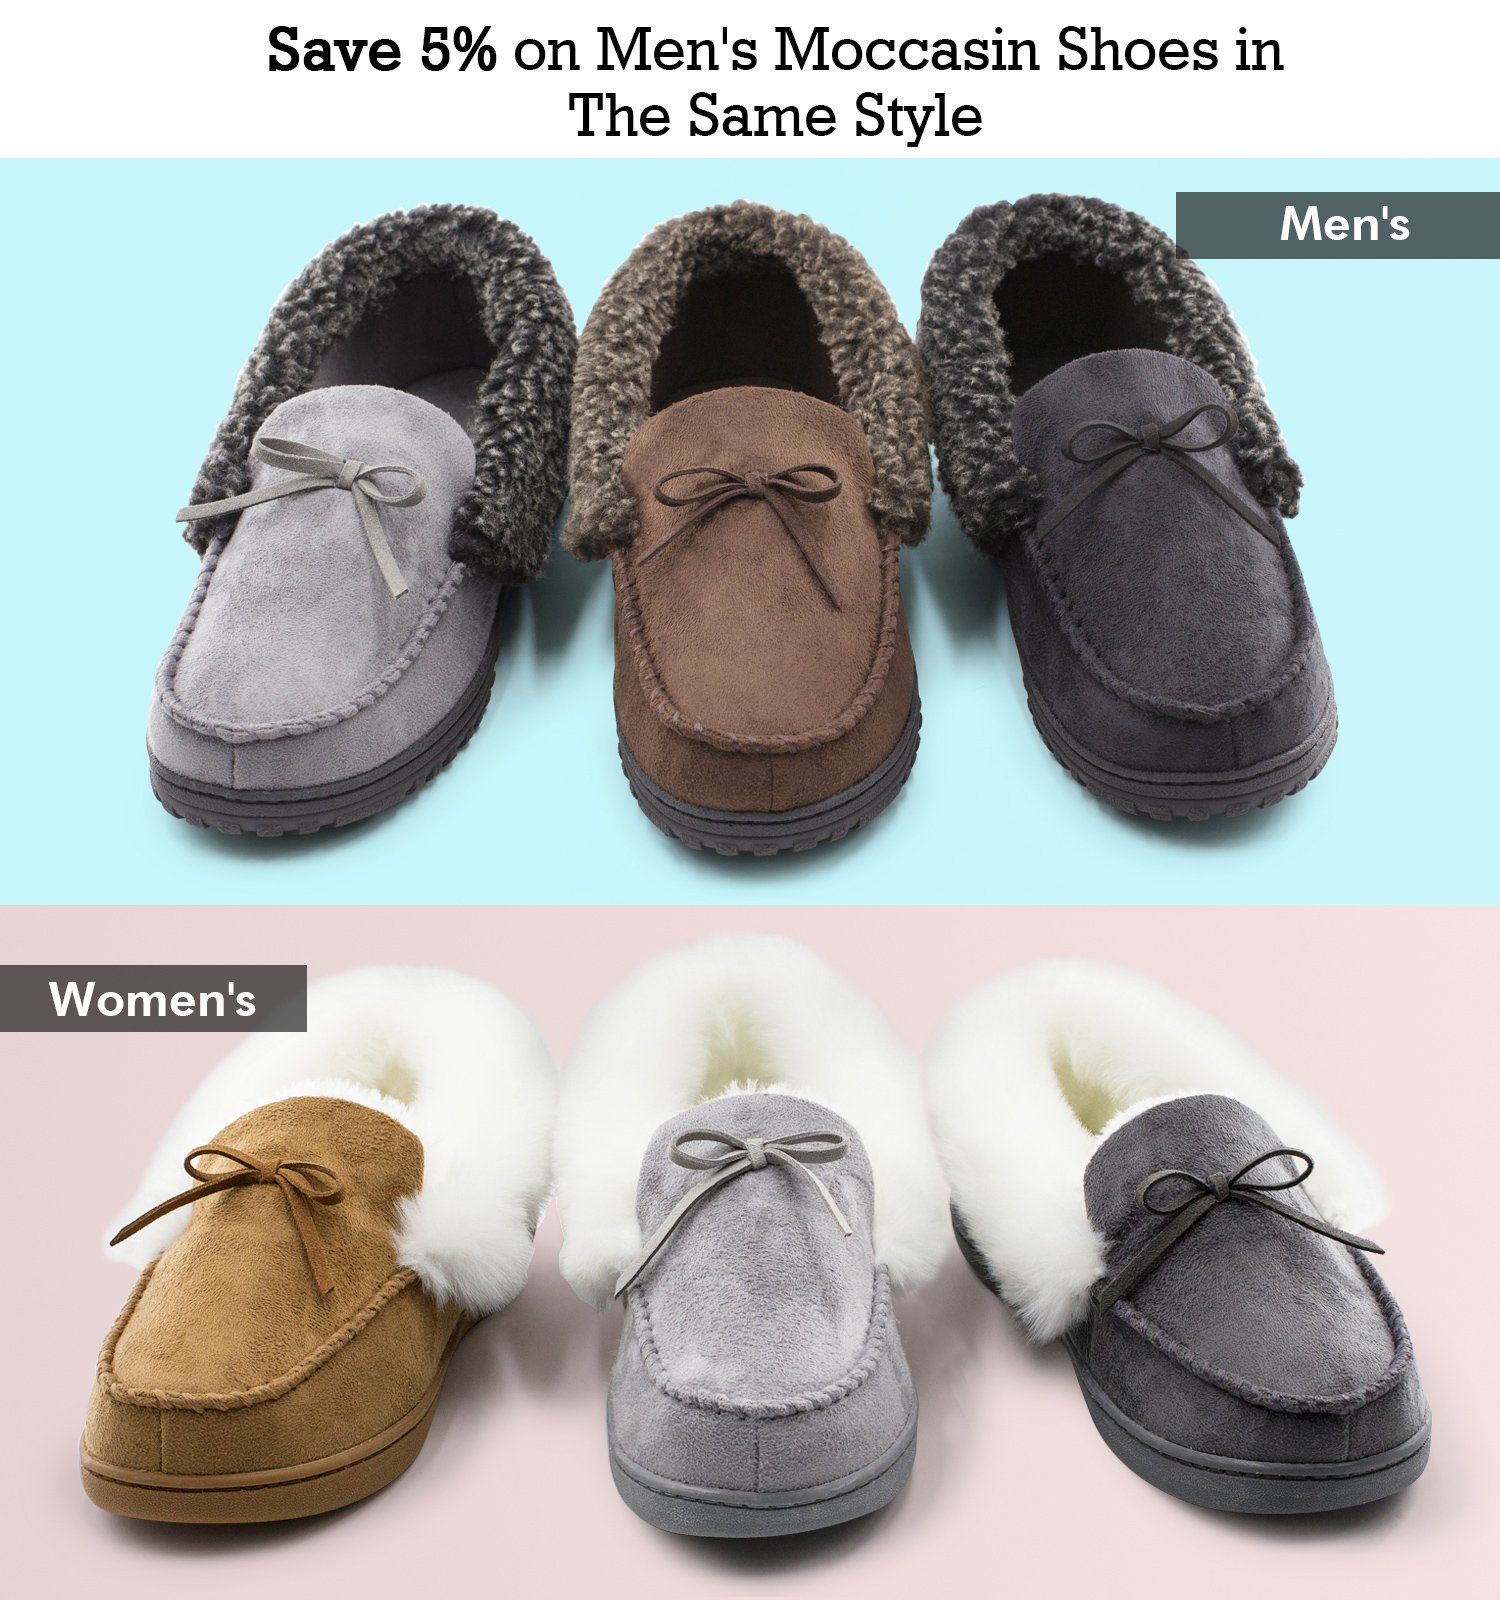 HomeIdeas Women's Faux Fur Lined Suede House Slippers, Breathable Indoor Outdoor Moccasins (7 B(M) US, Black) by HomeIdeas (Image #6)